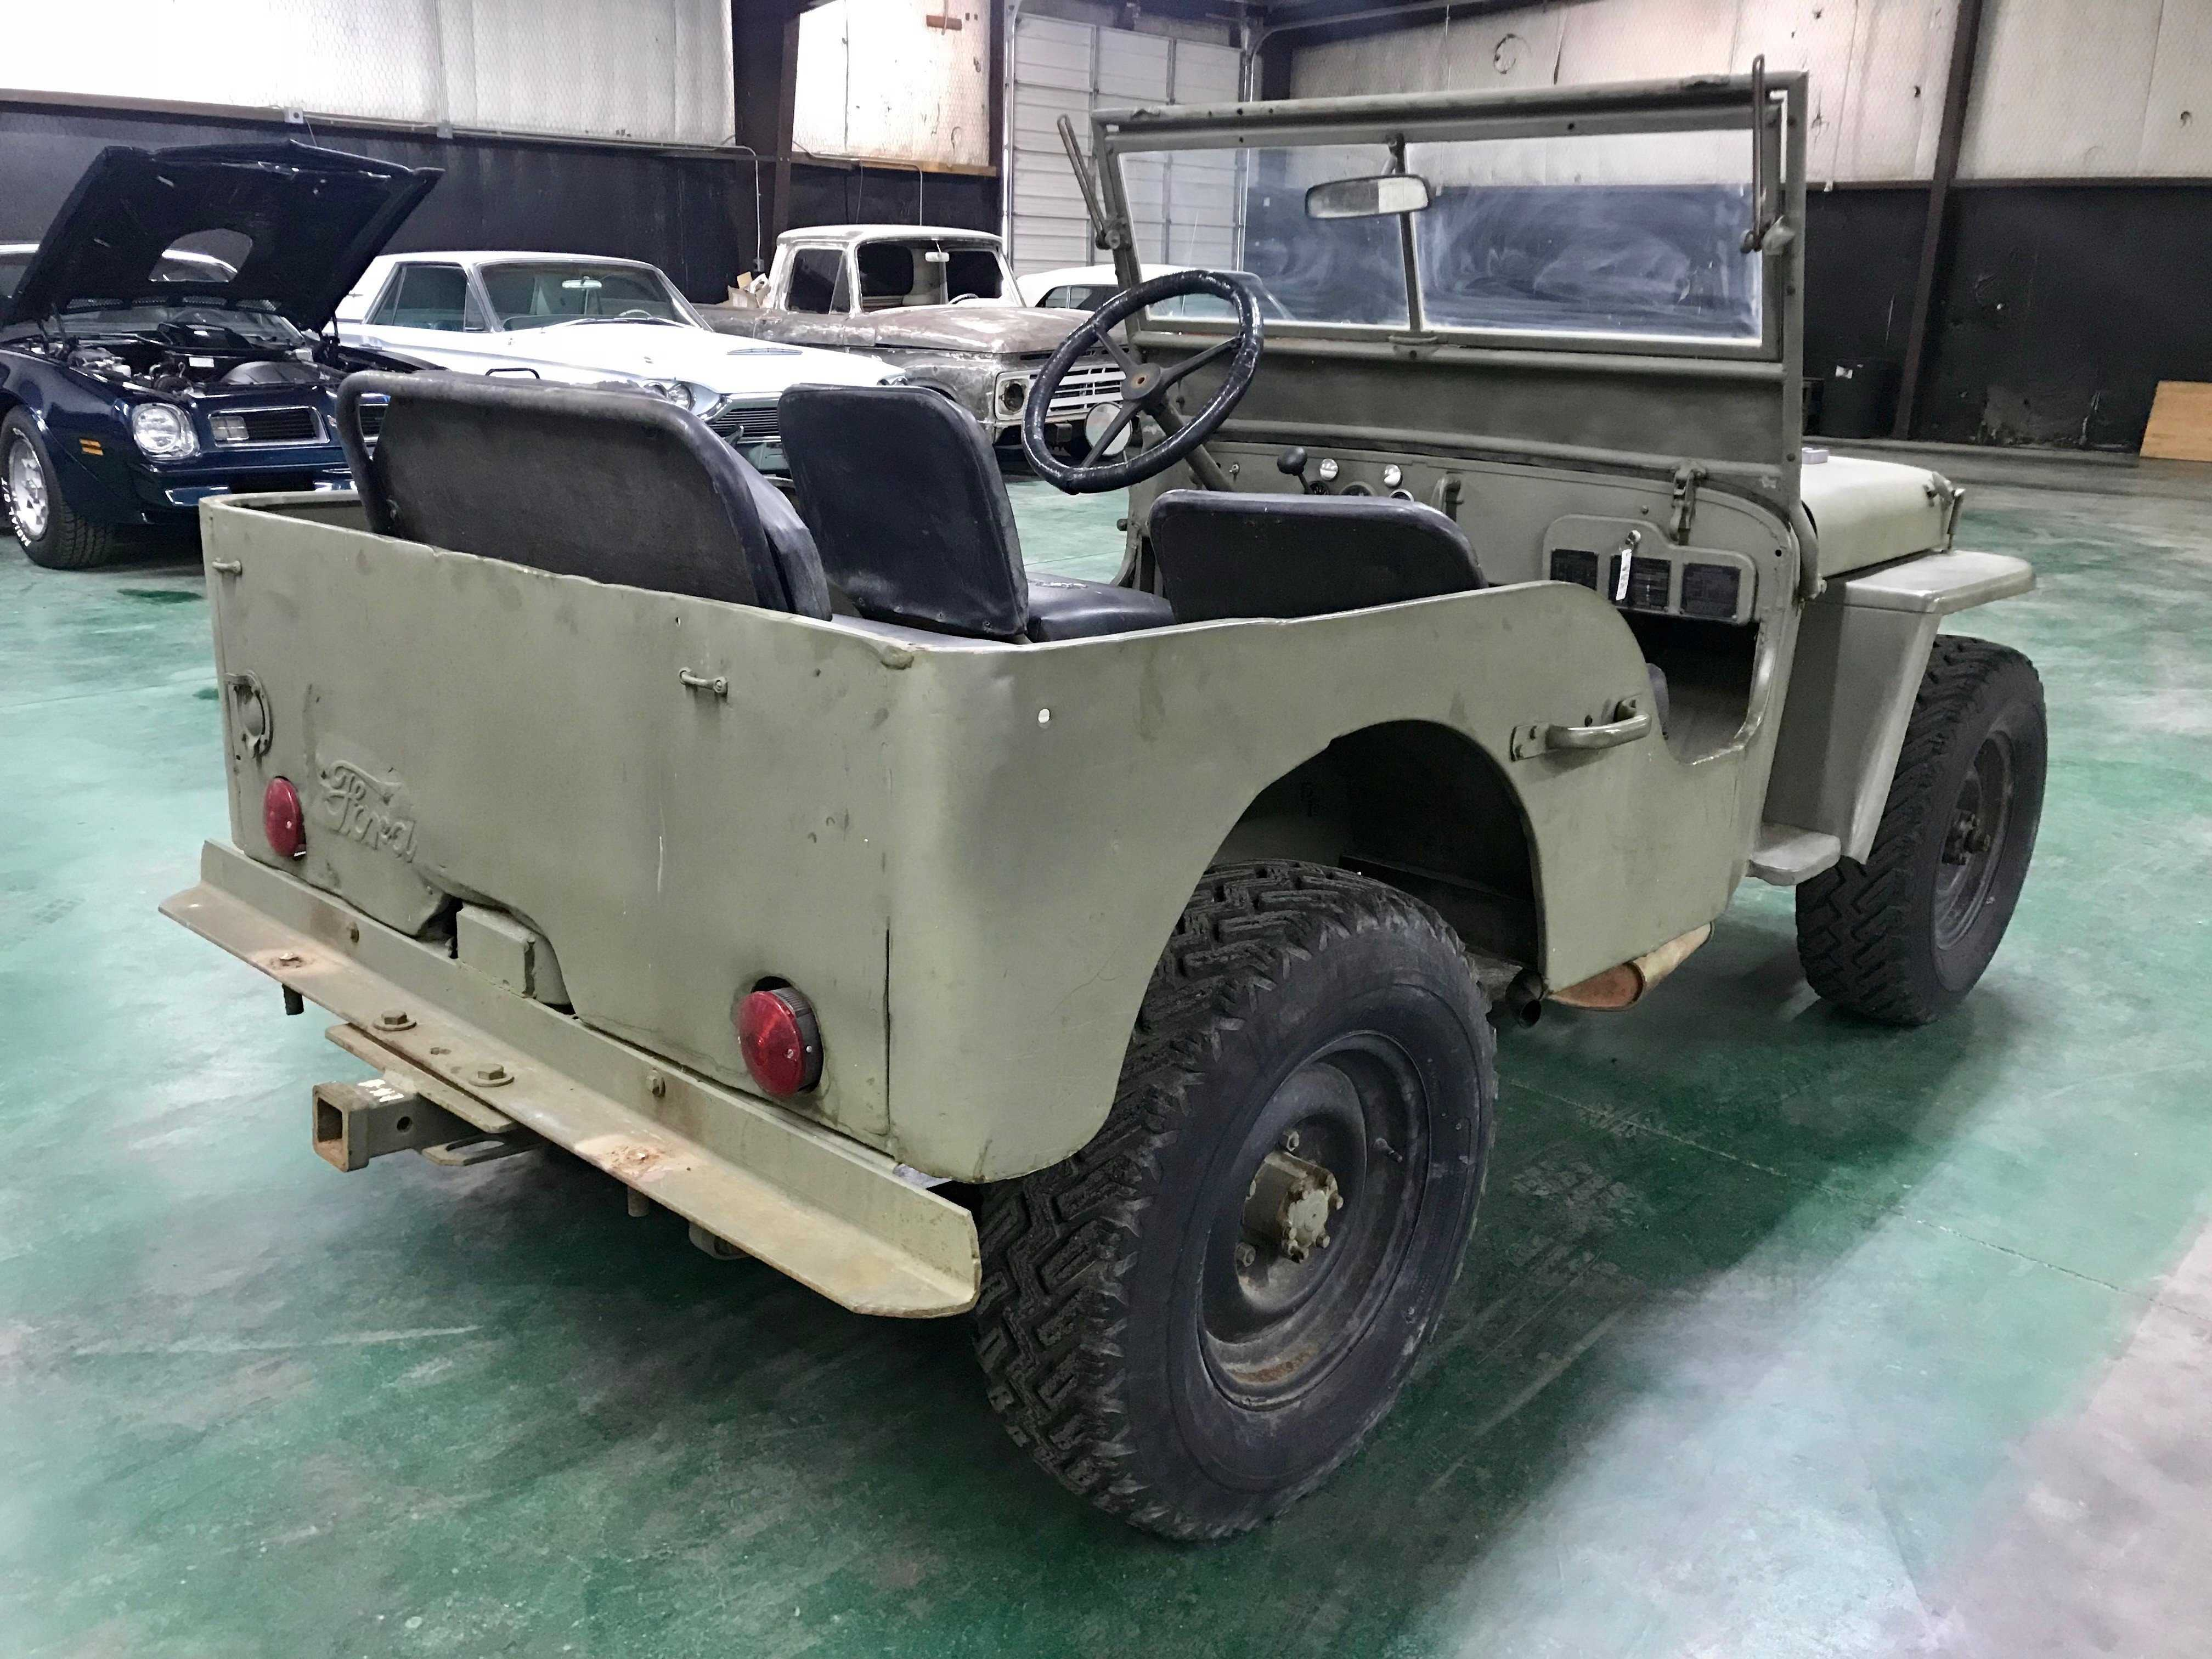 1942 Ford Gpw Jeep Sale ✓ Ford is Your Car